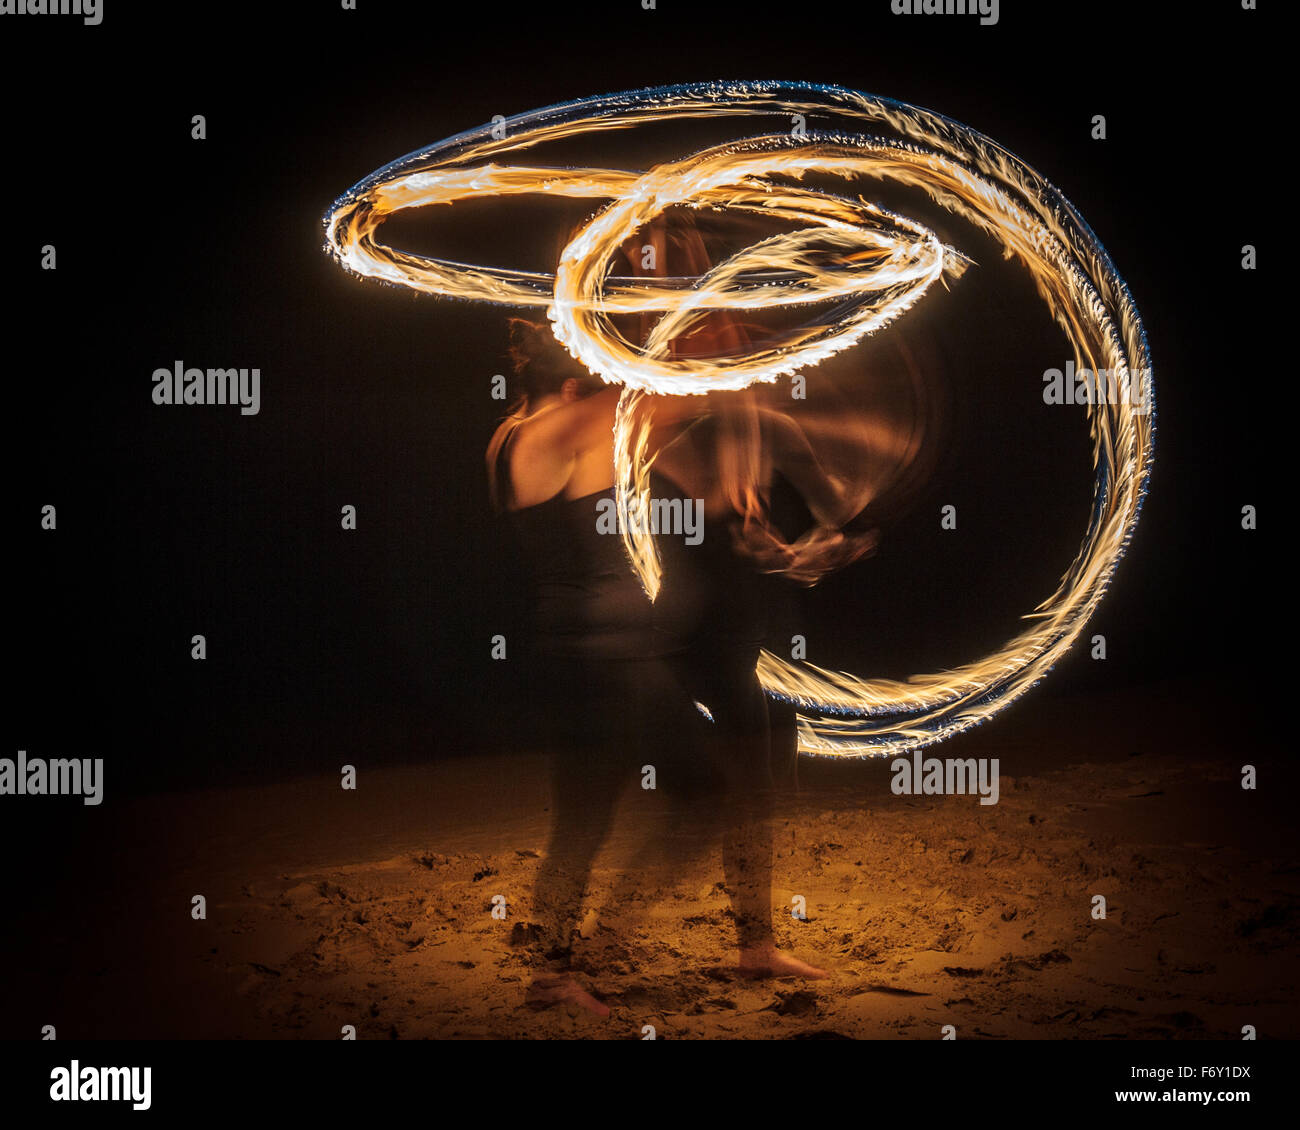 Fire twirling or 'fire poi' performance - Stock Image